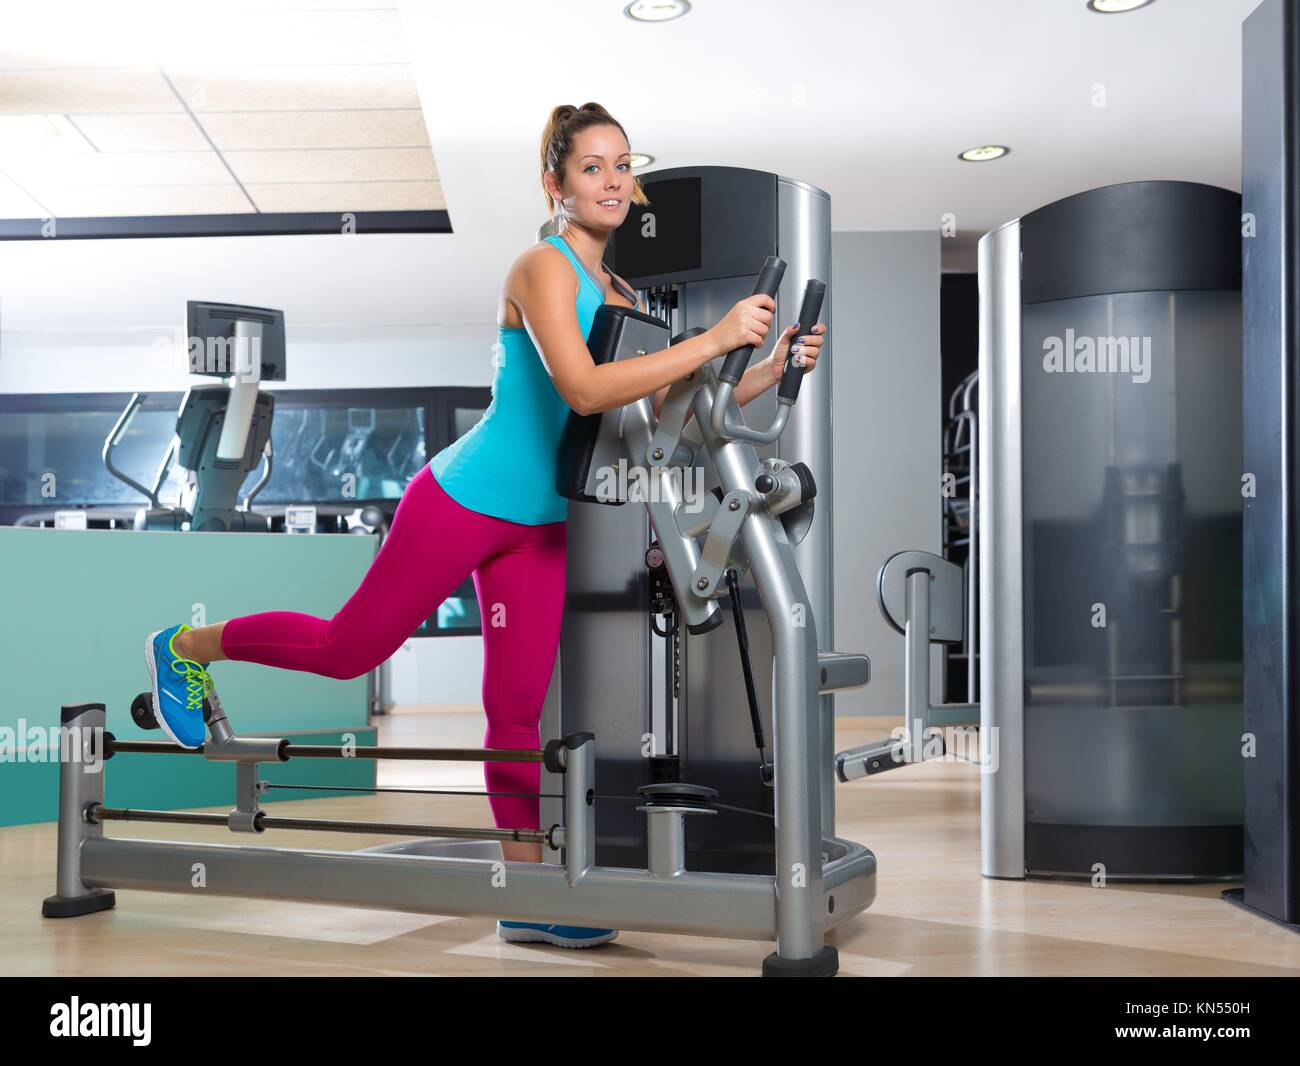 Gym glute exercise machine woman workout indoor. - Stock Image